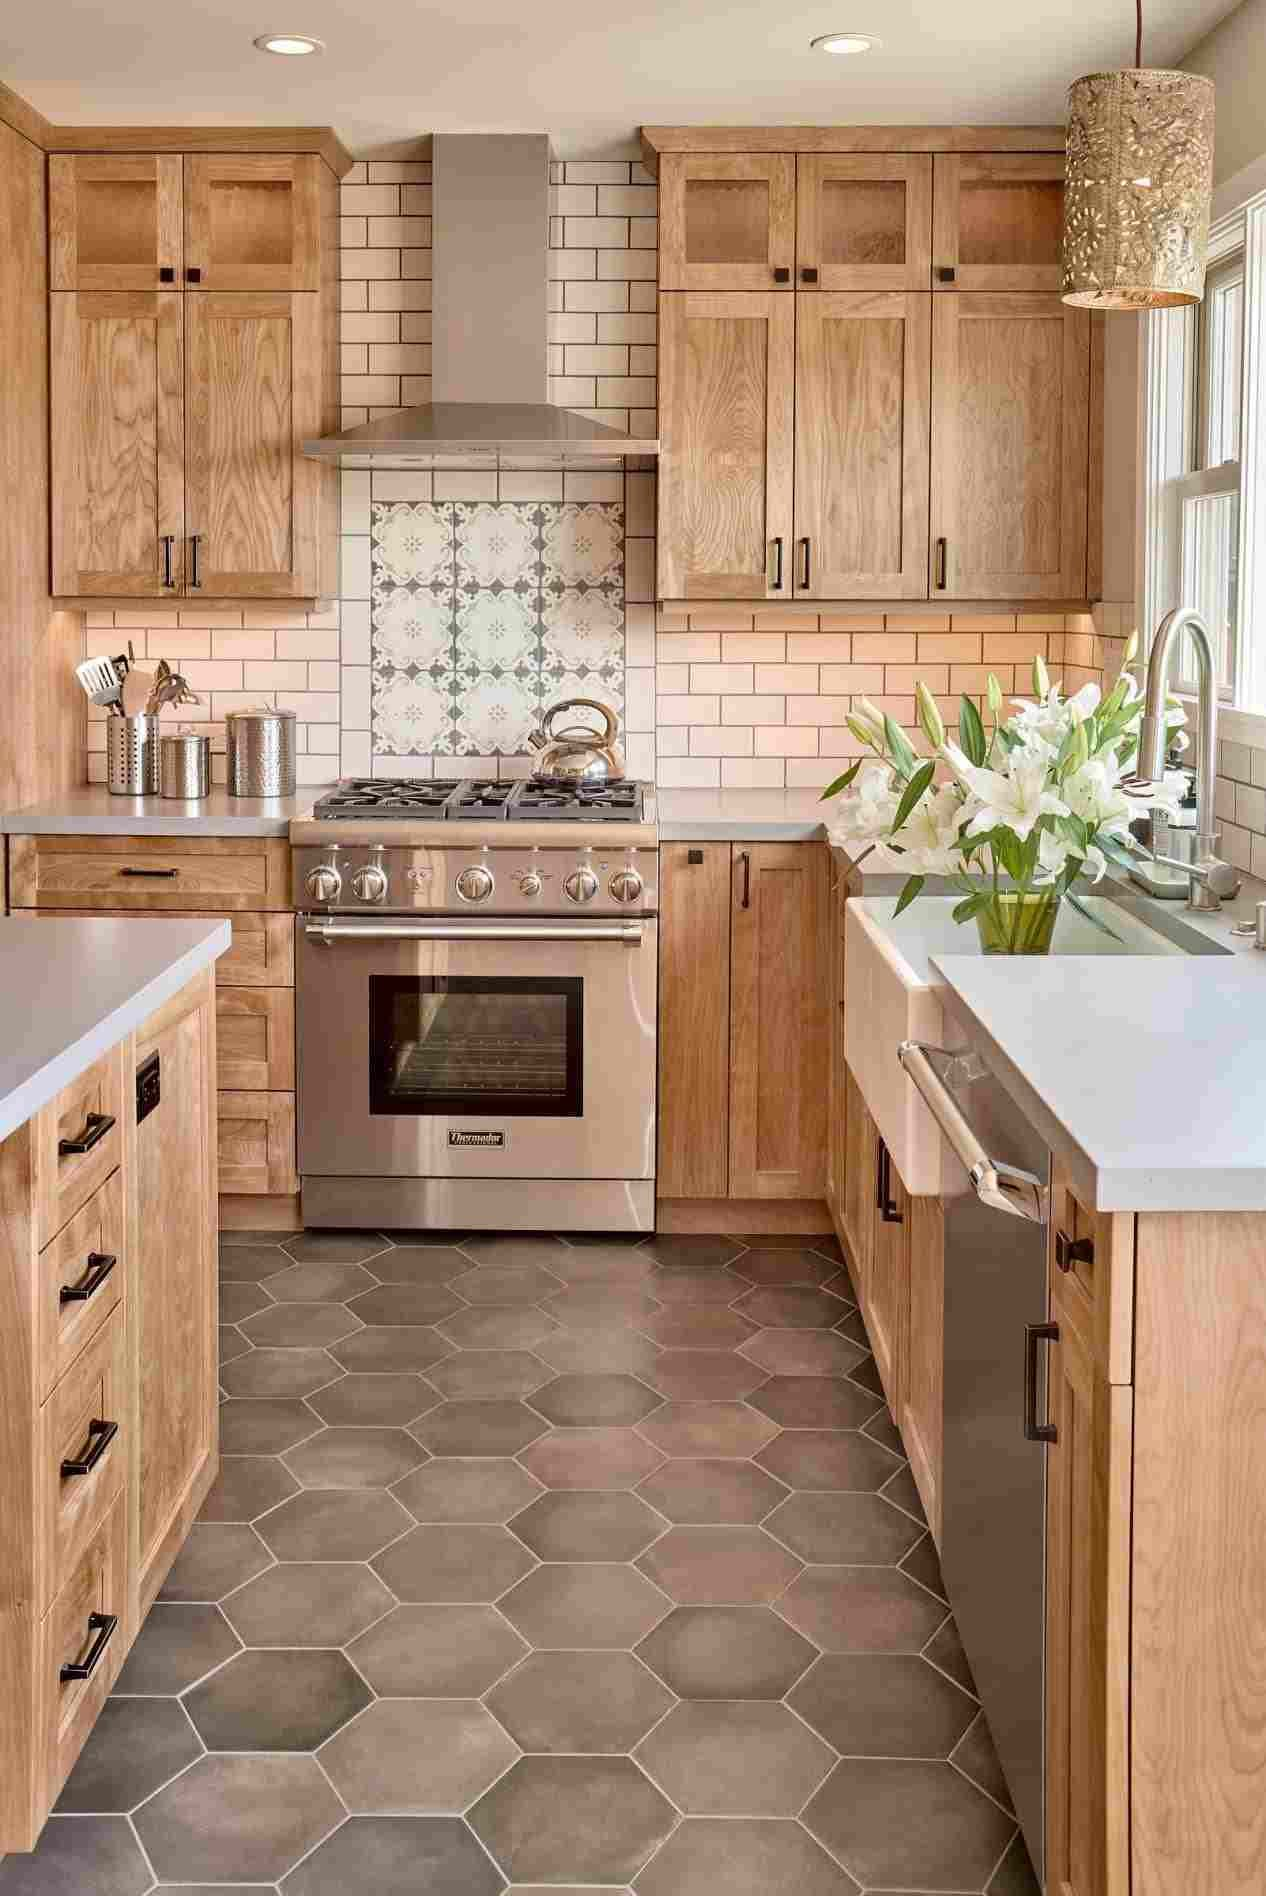 Lowe'S Mission Style Kitchen Home decor